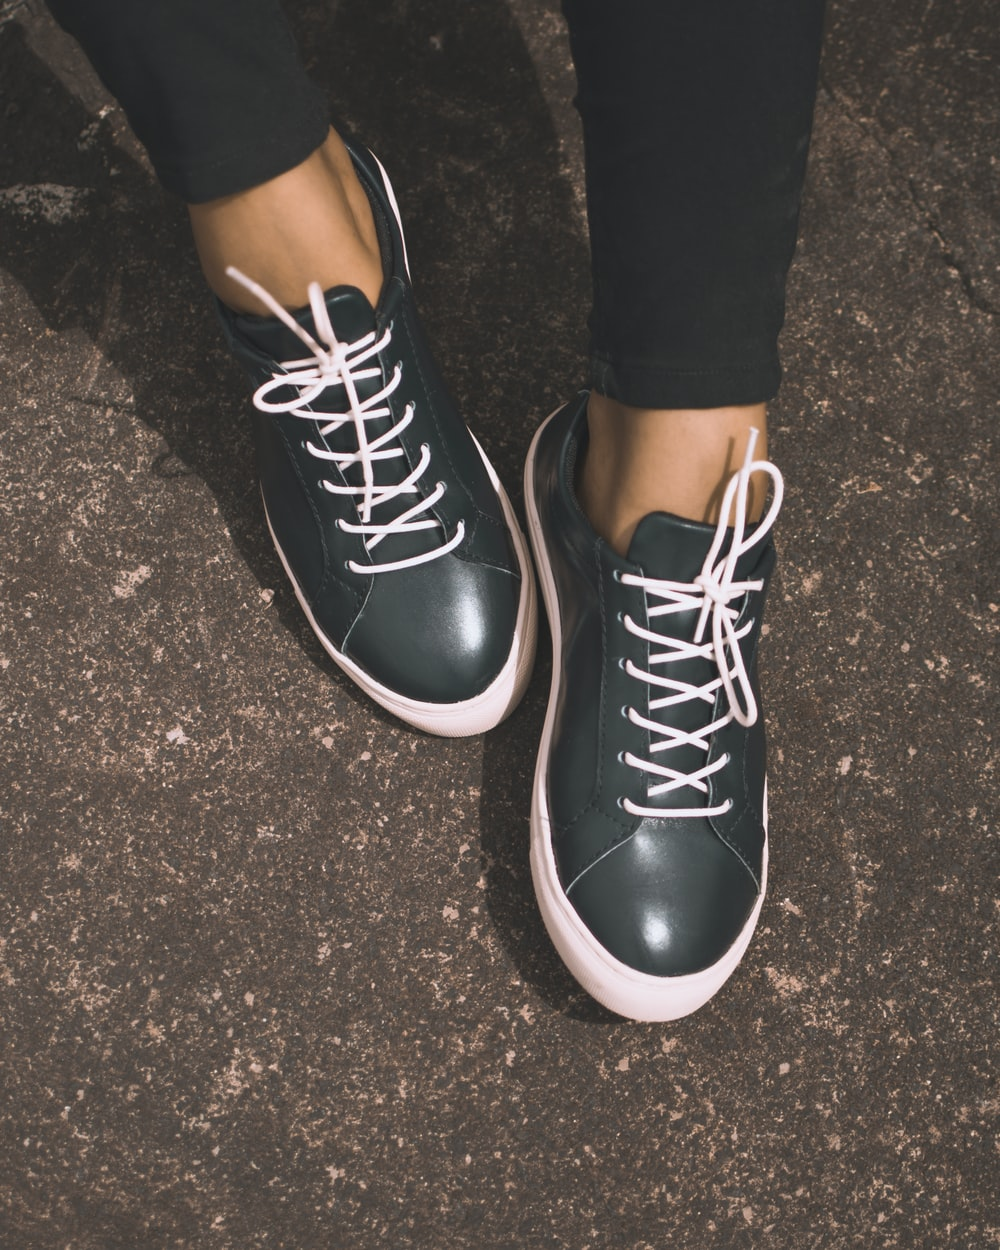 person wearing black leather sneakers